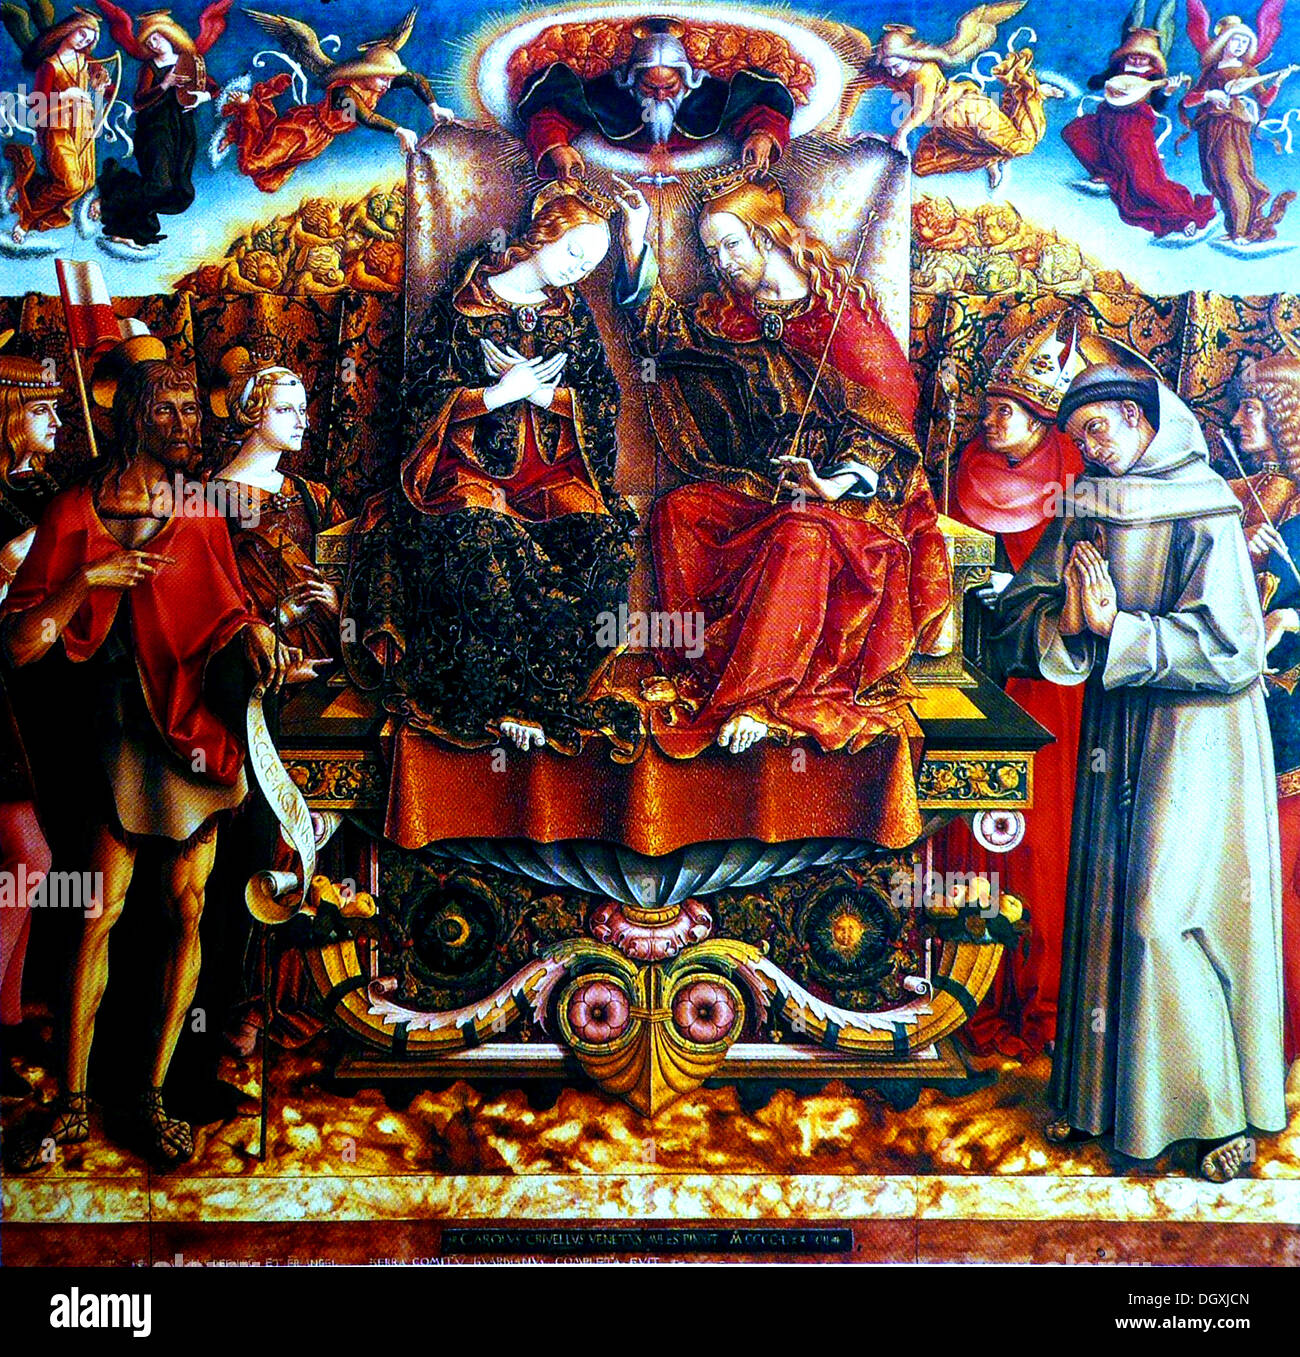 Coronation of the Virgin - by Carlo Crivelli, 1493 - Stock Image